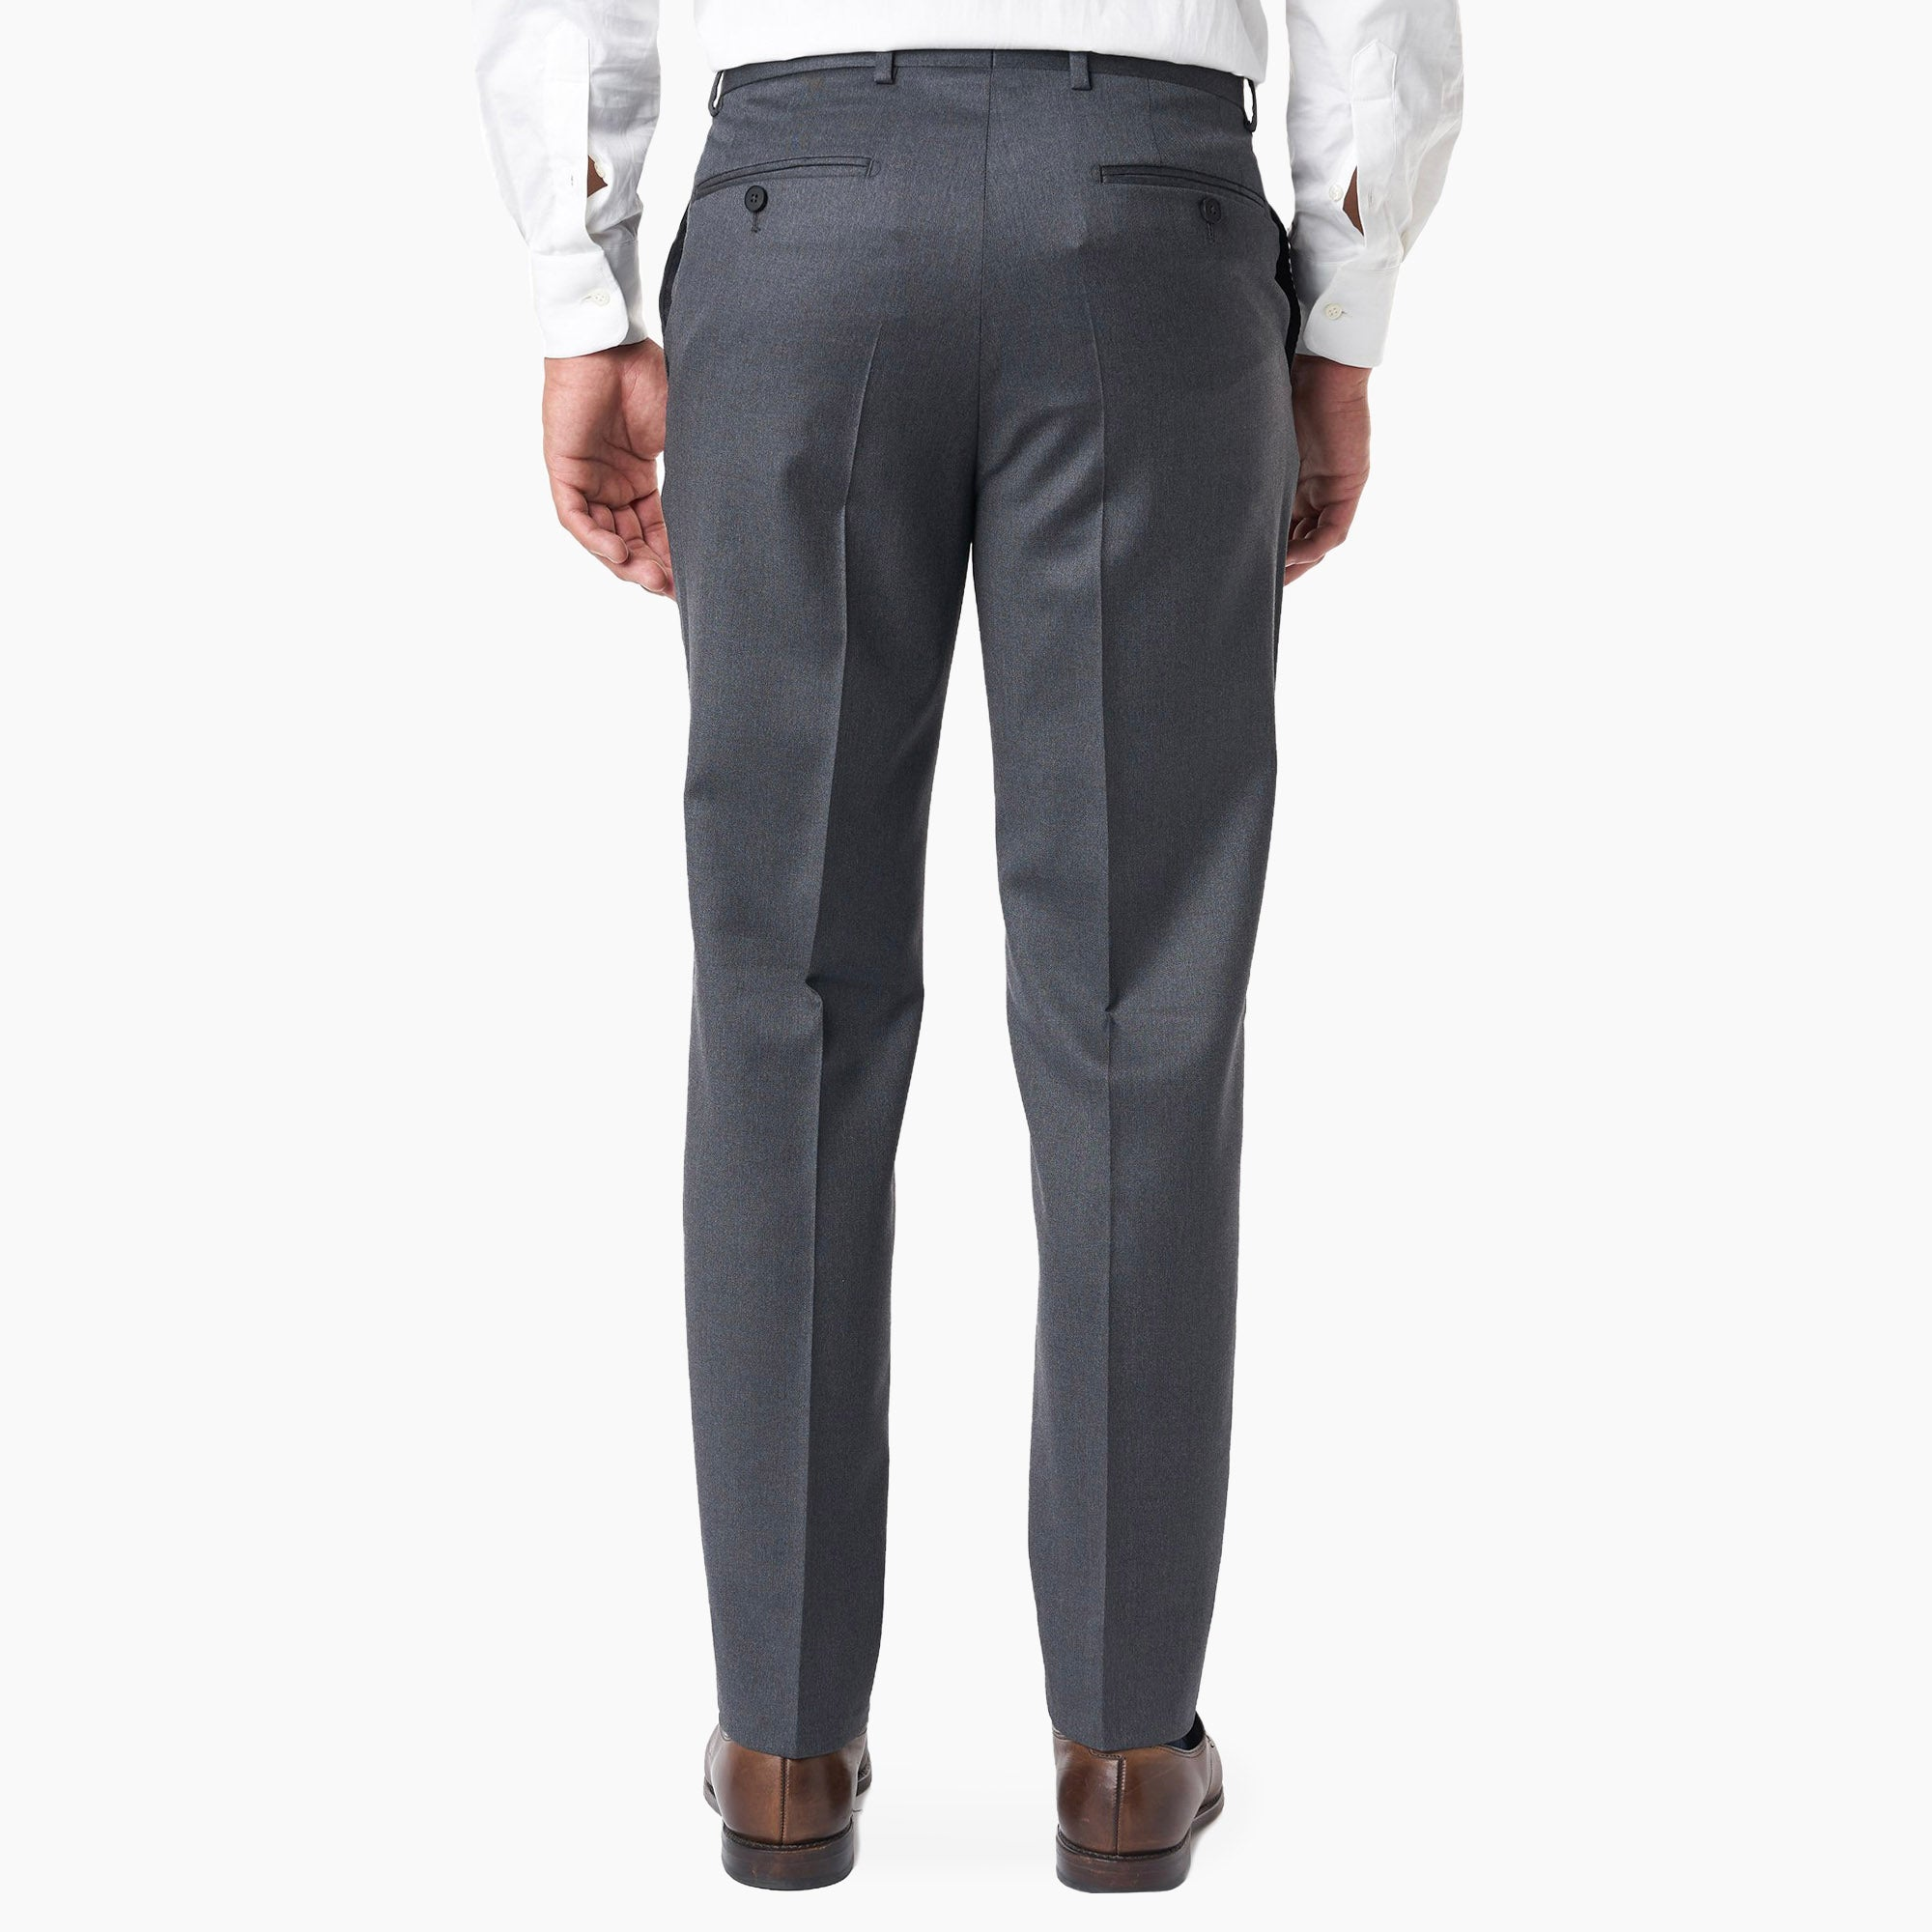 Essex Dress Pants - Grey